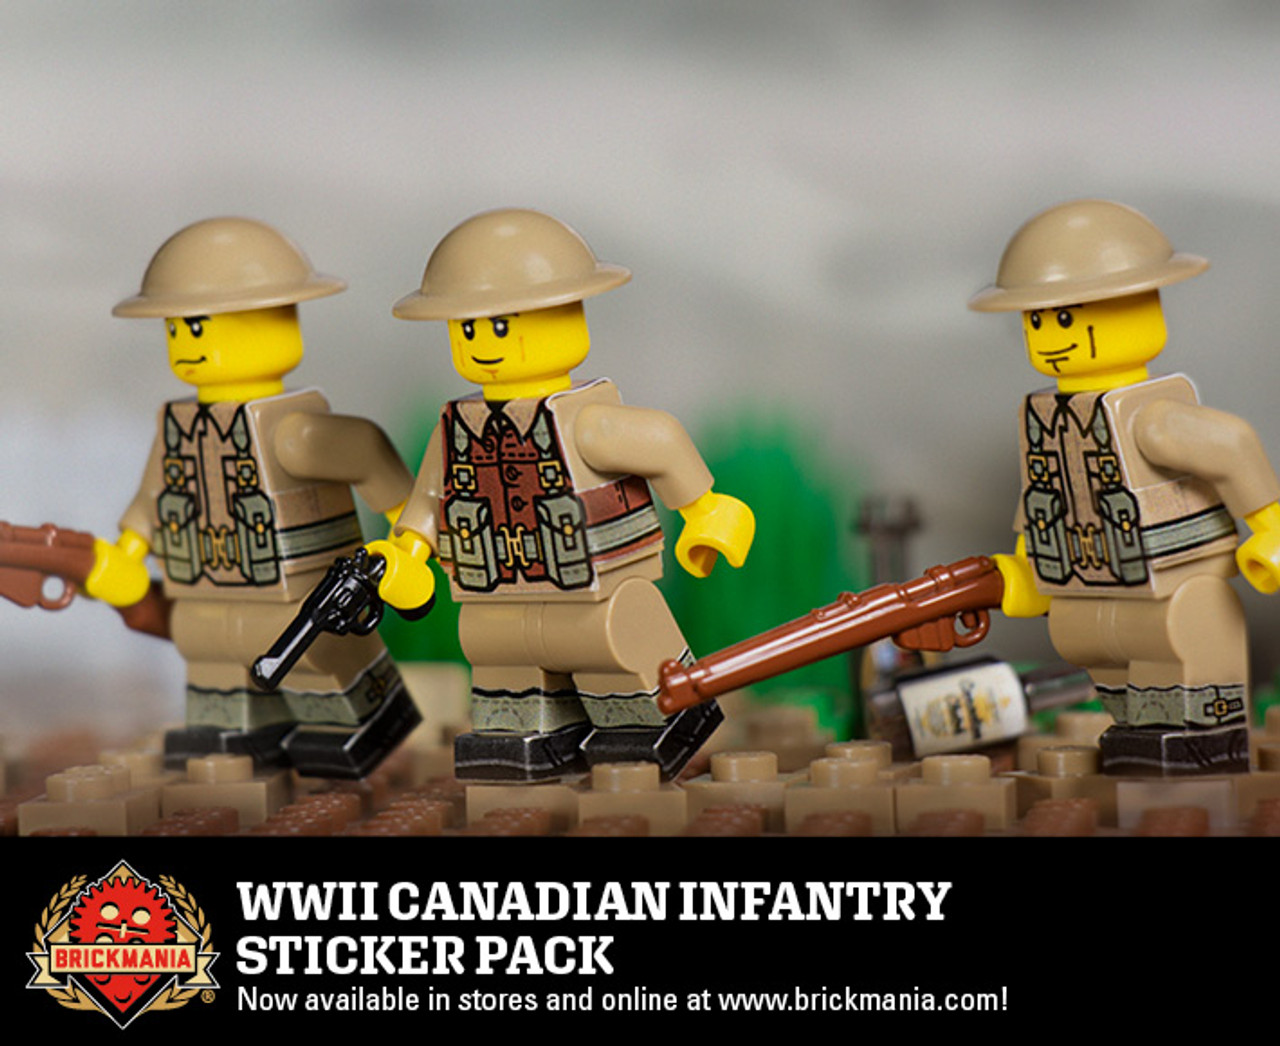 WWII Canadian Infantry Sticker Pack